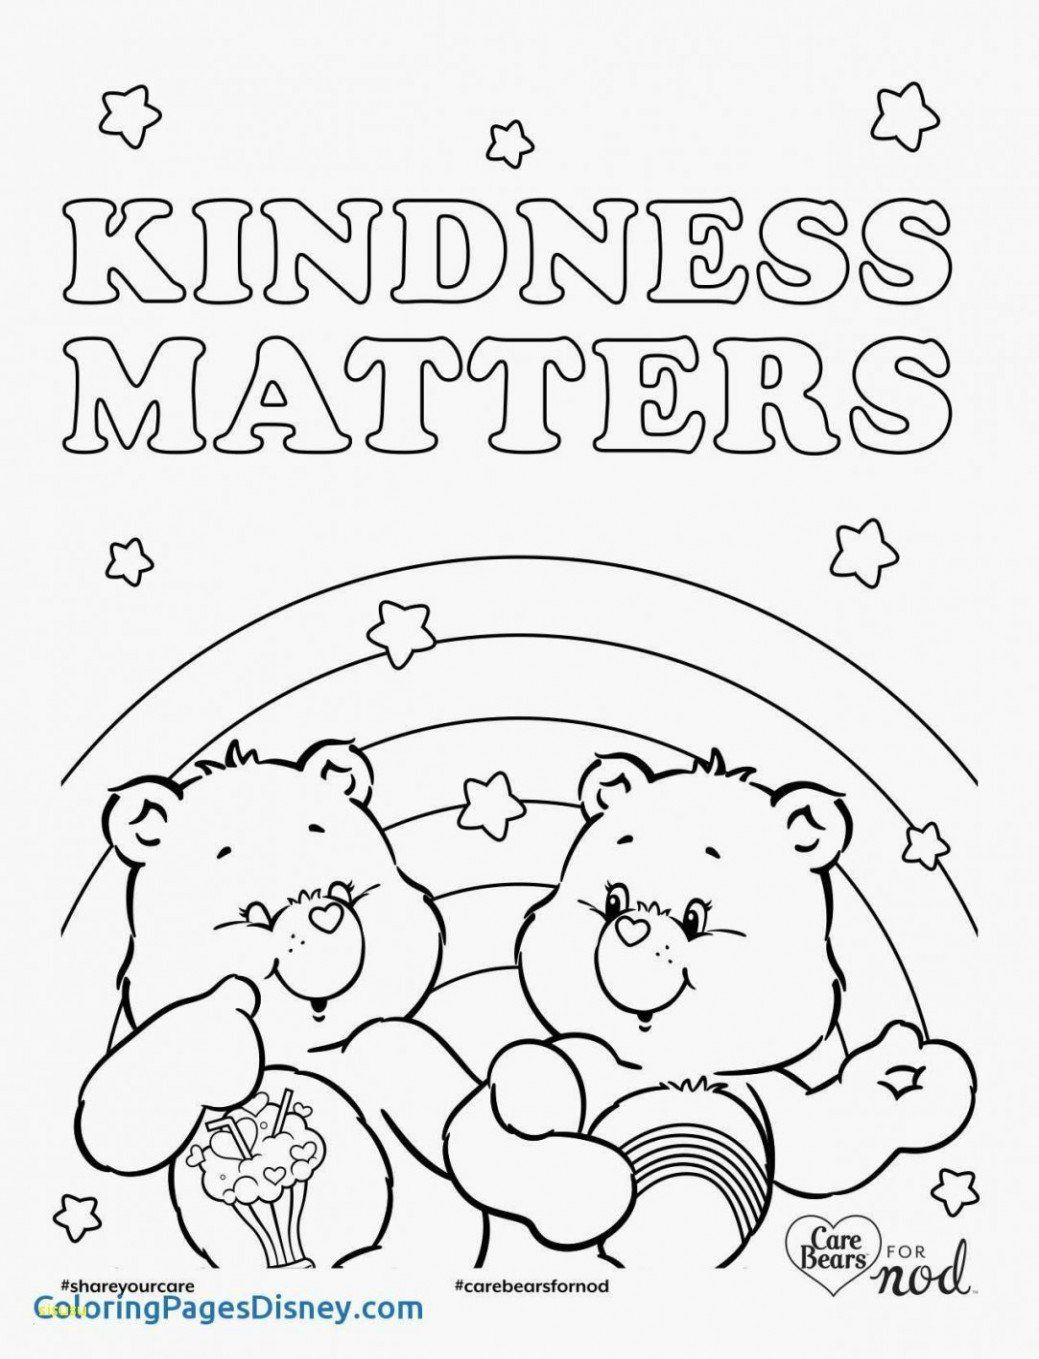 Care Bears Coloring Pages Lovely Coloring Pages Care Bear Coloring Page Beautiful Landsc Bear Coloring Pages Disney Princess Coloring Pages Coloring Book Pages